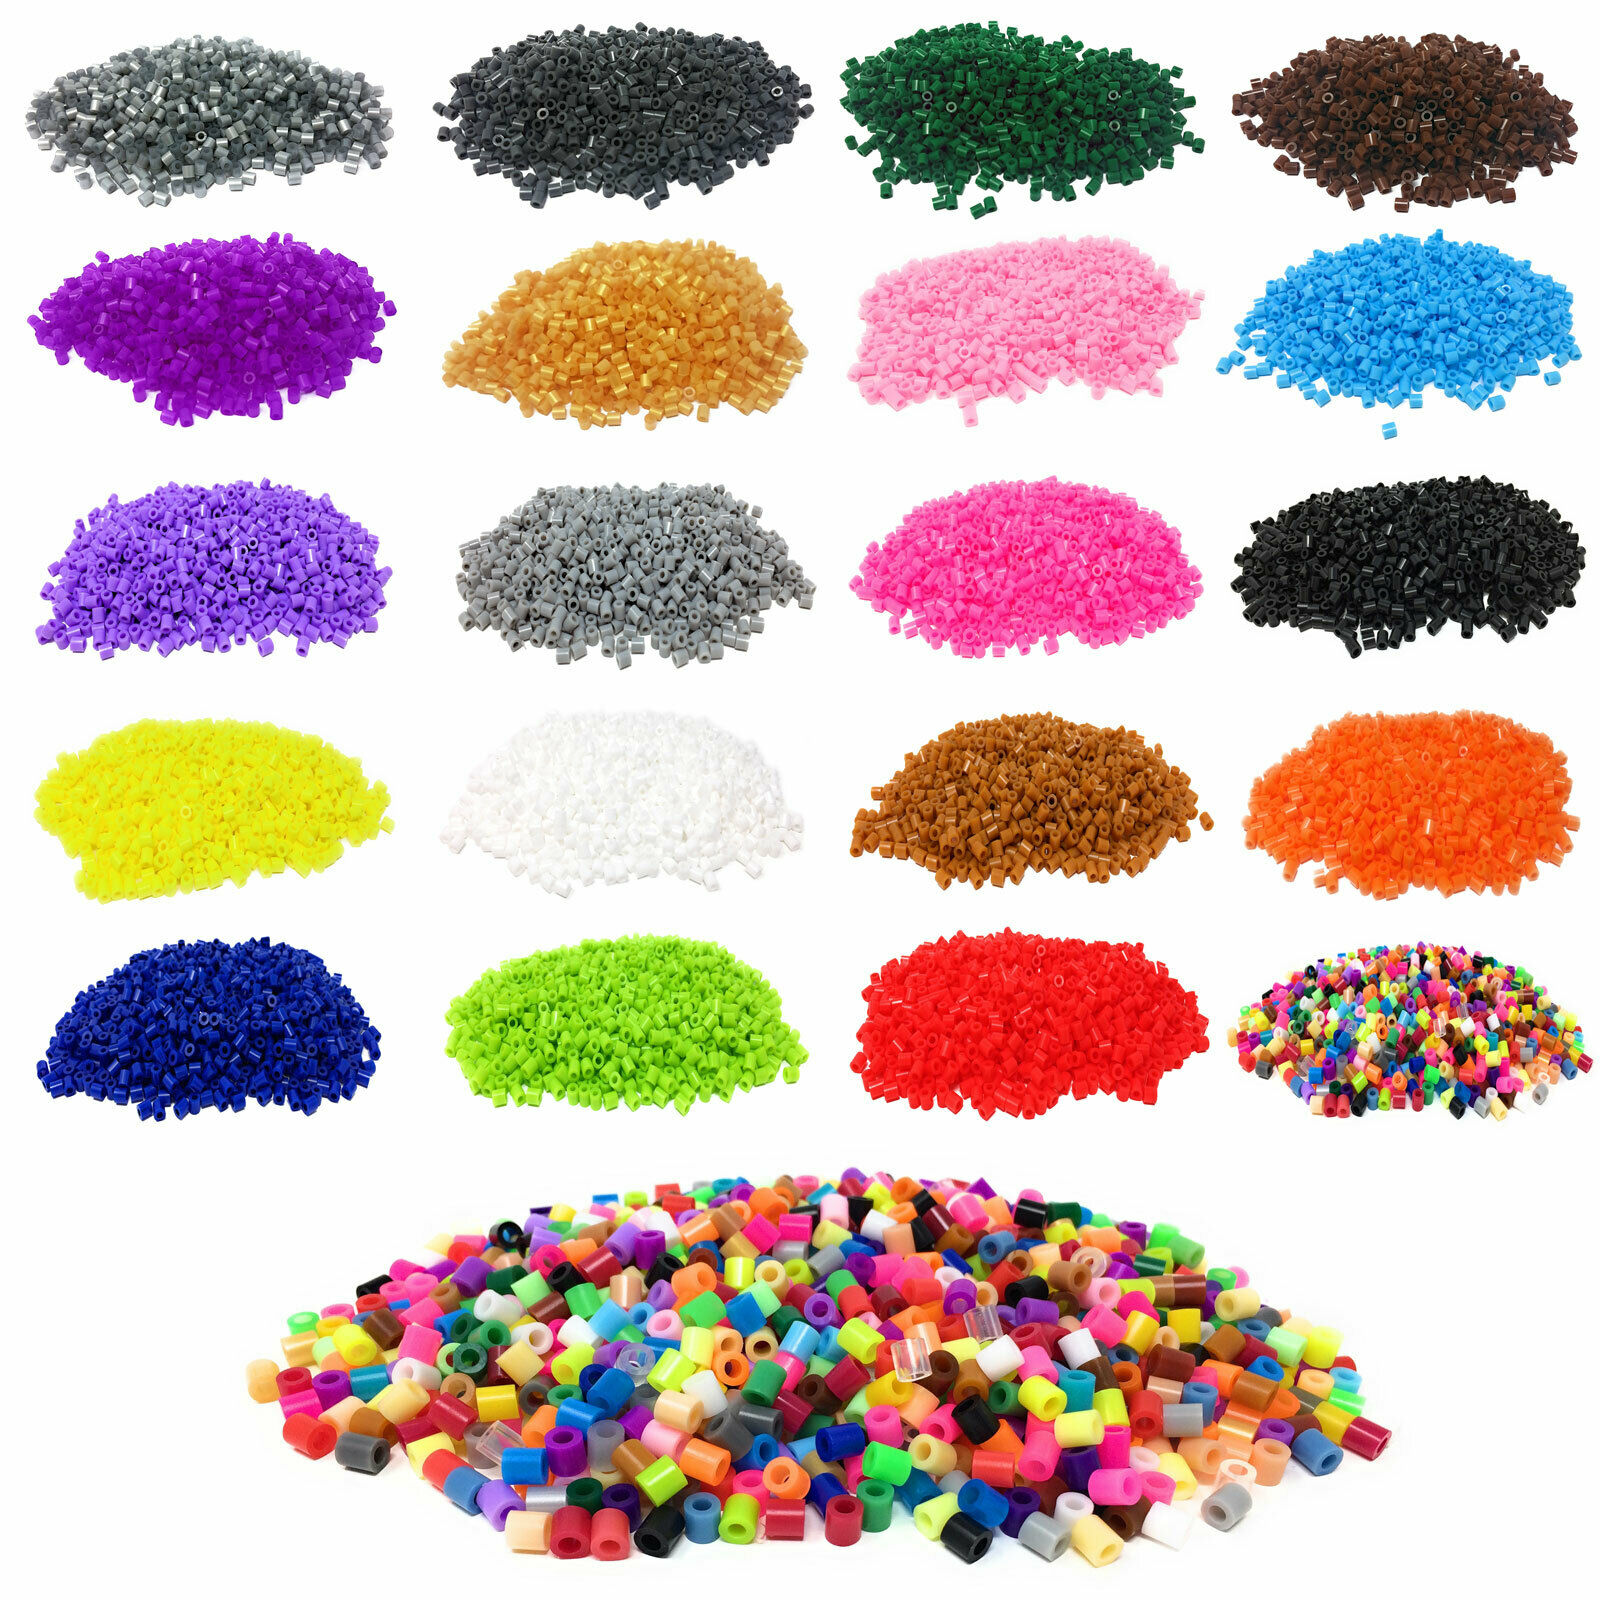 Fuse Beads 1000 Pack Hama Beads 5mm Midi Work Like Hama Bead Mixed Iron Kids Arts & Crafts Educational Toys(China)